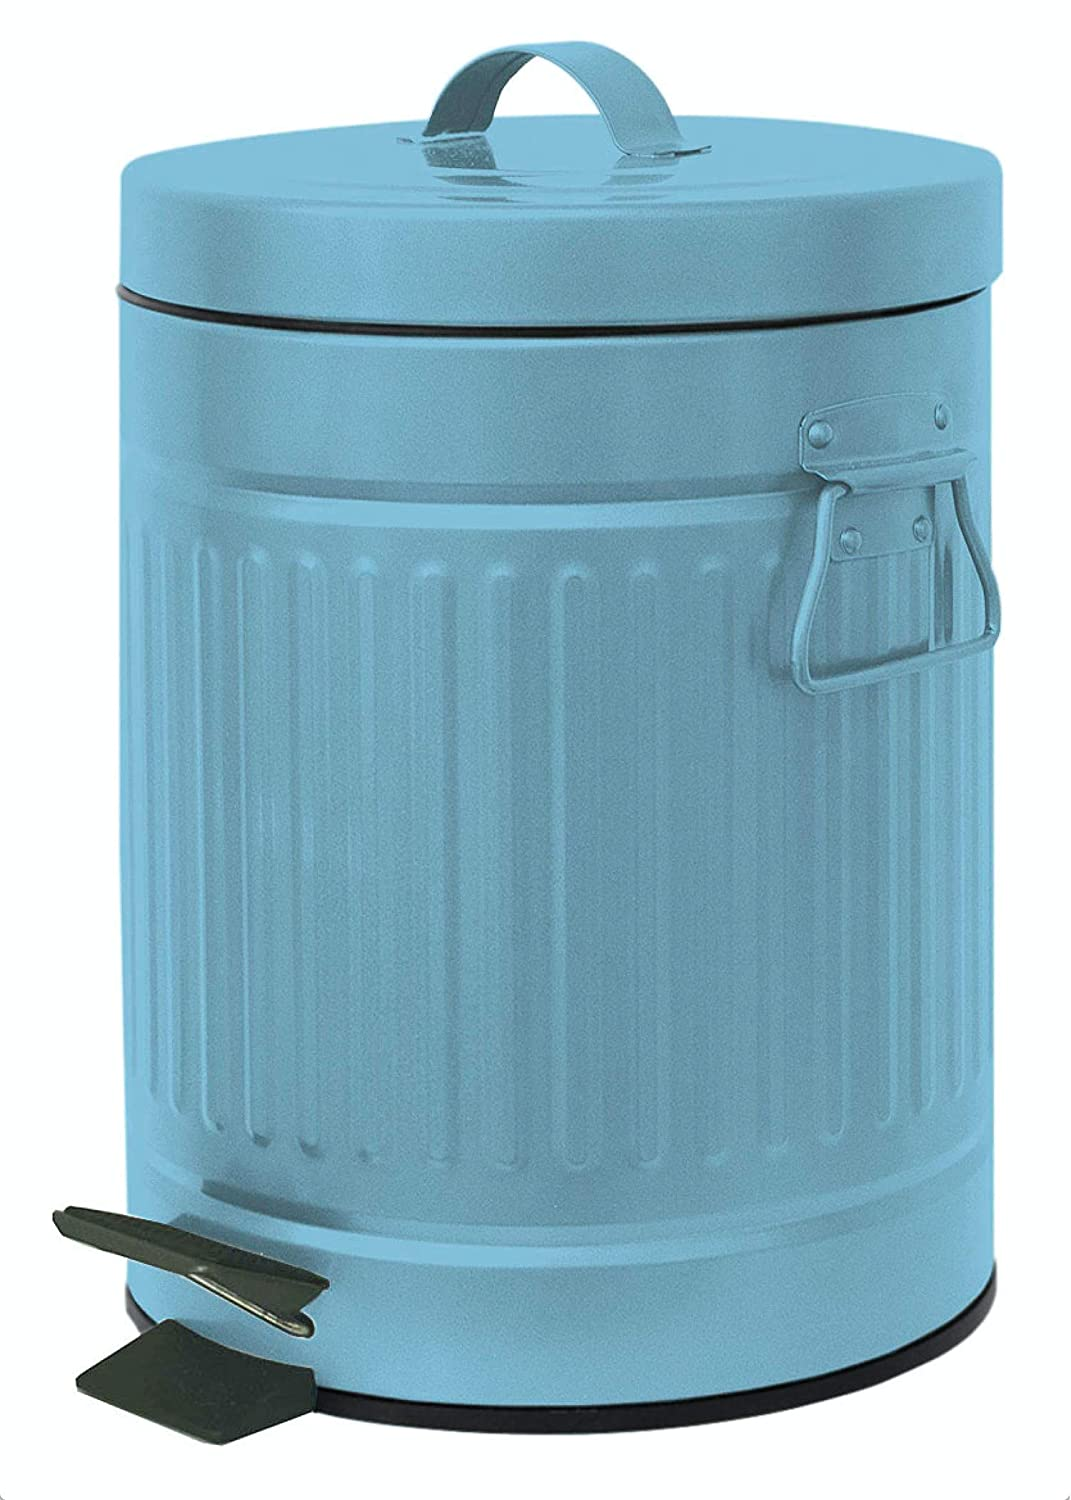 Home Expressions Inc. Home Expressions Retro Small Step Bin Trash Can .8 Gallons 3 Liter 6.5x9.5 Copper